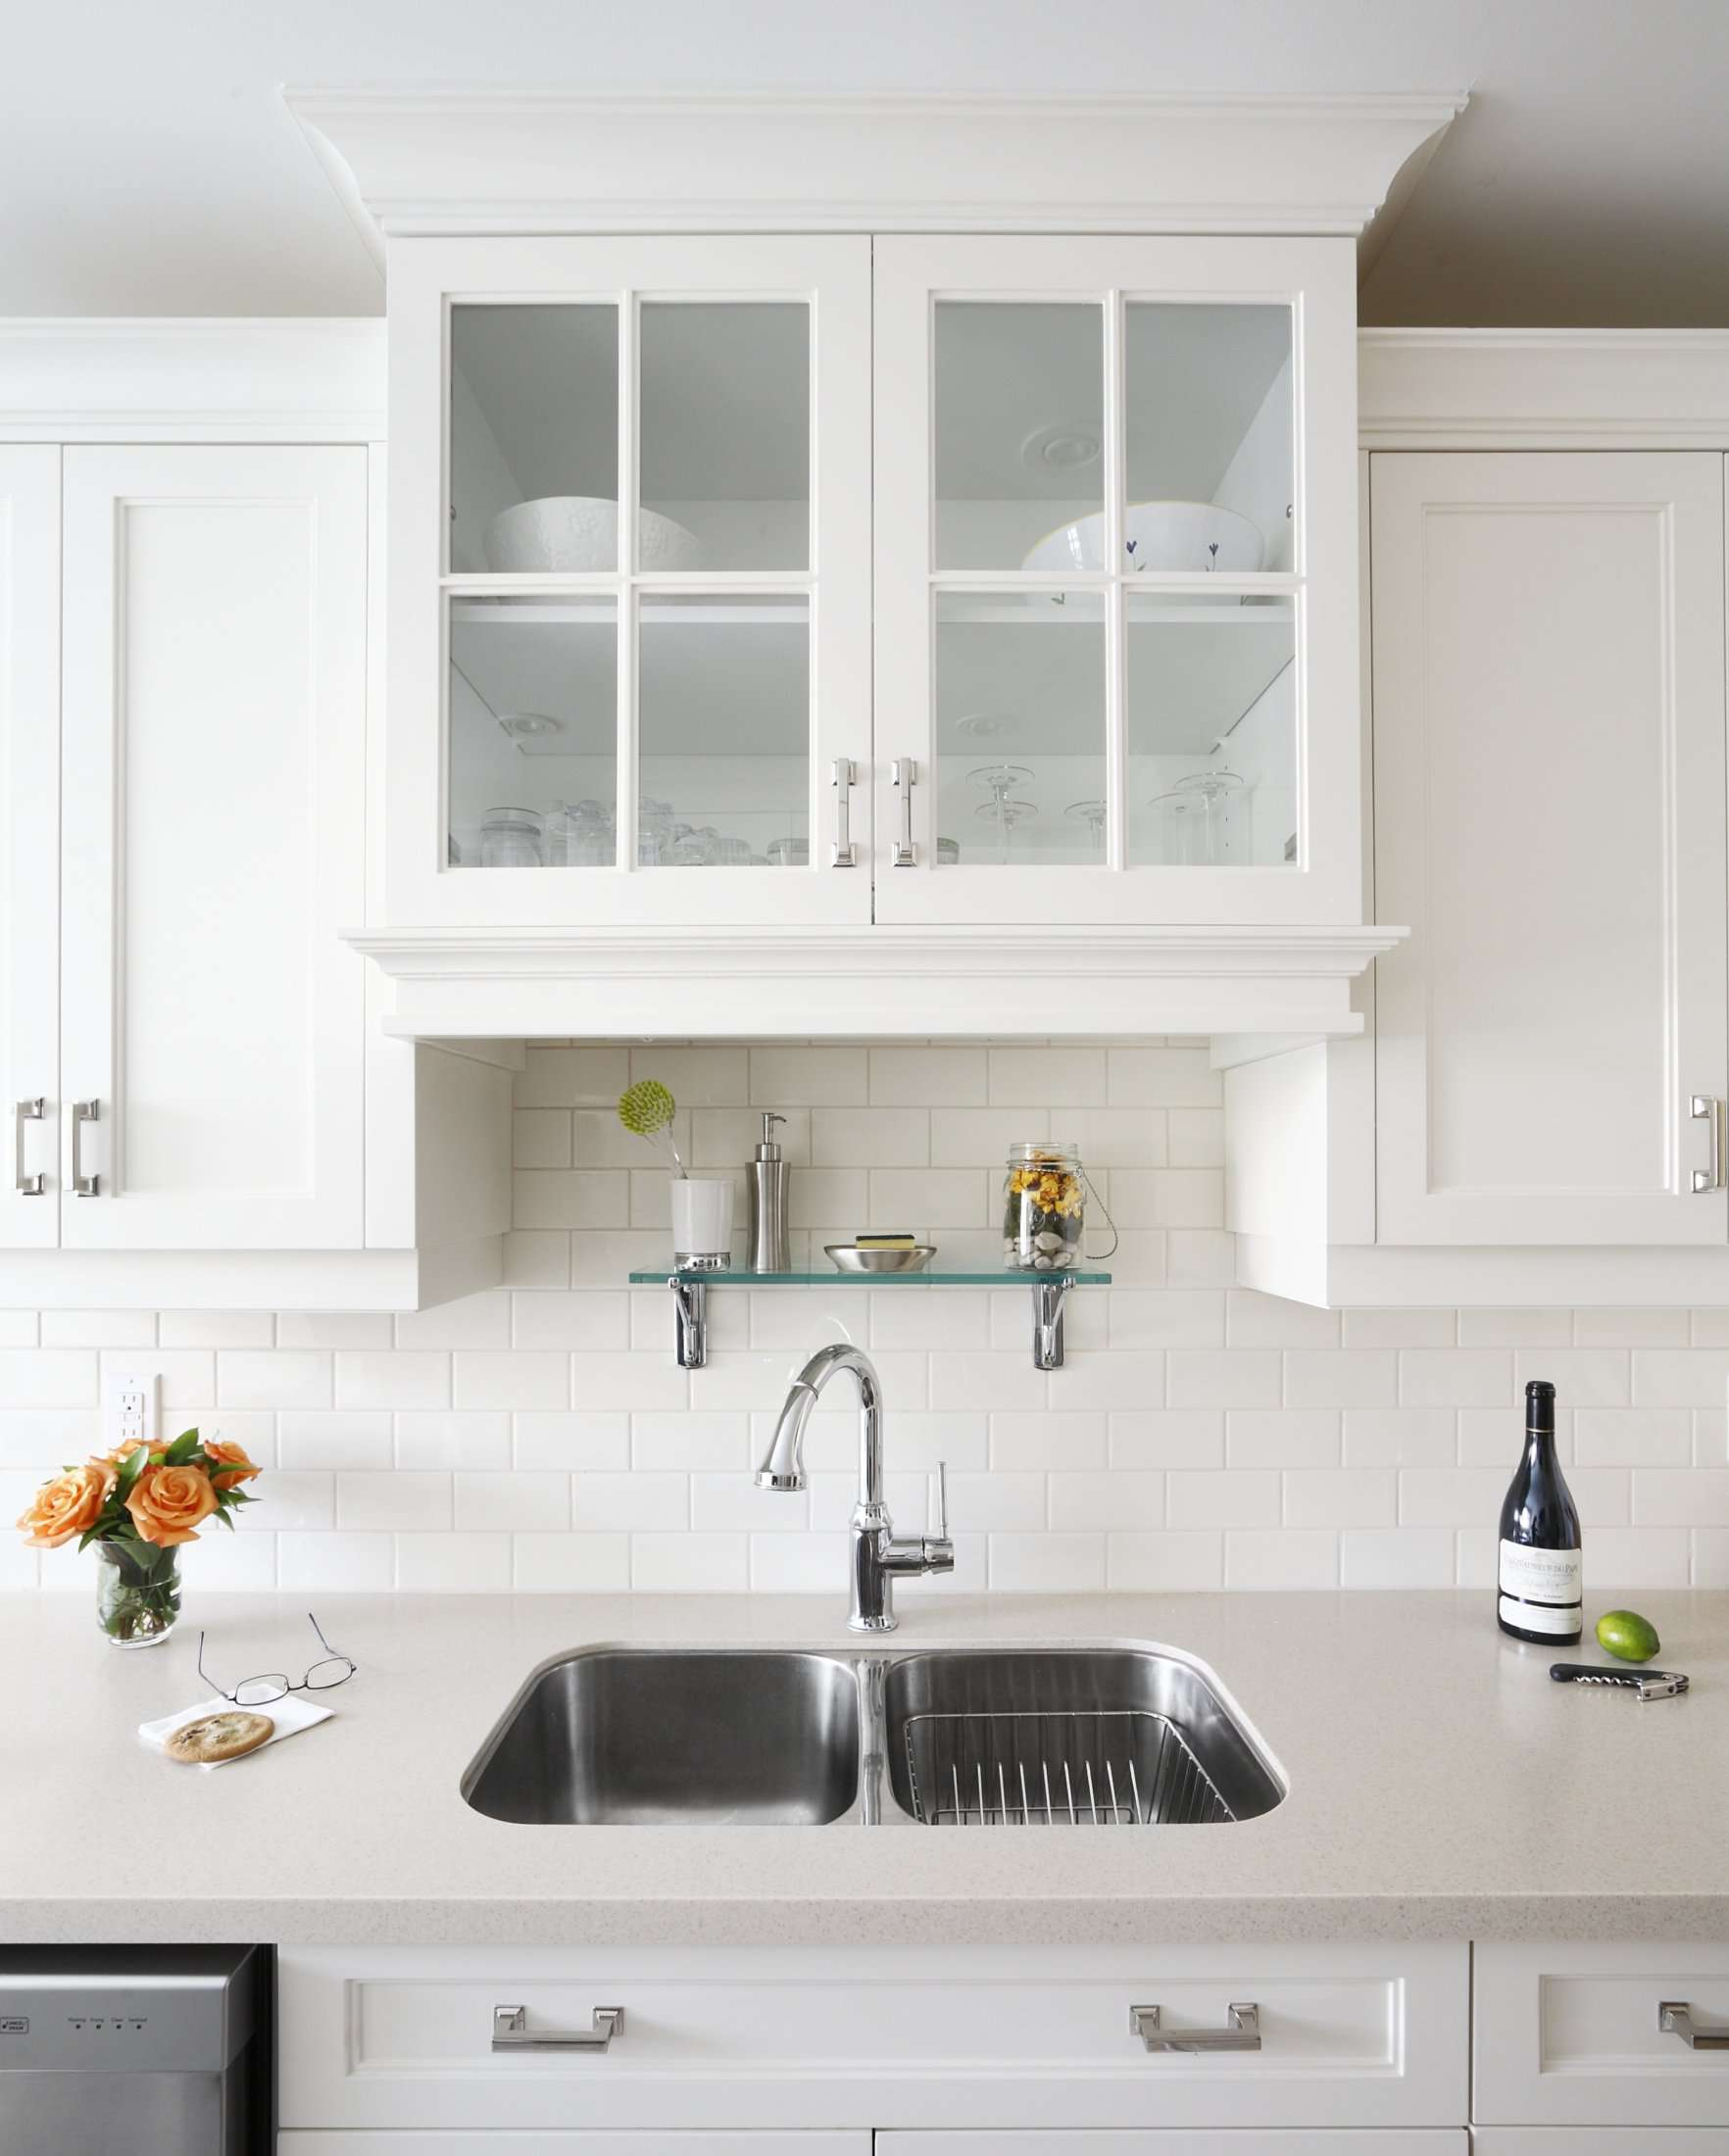 solid countertop with an undermount sink